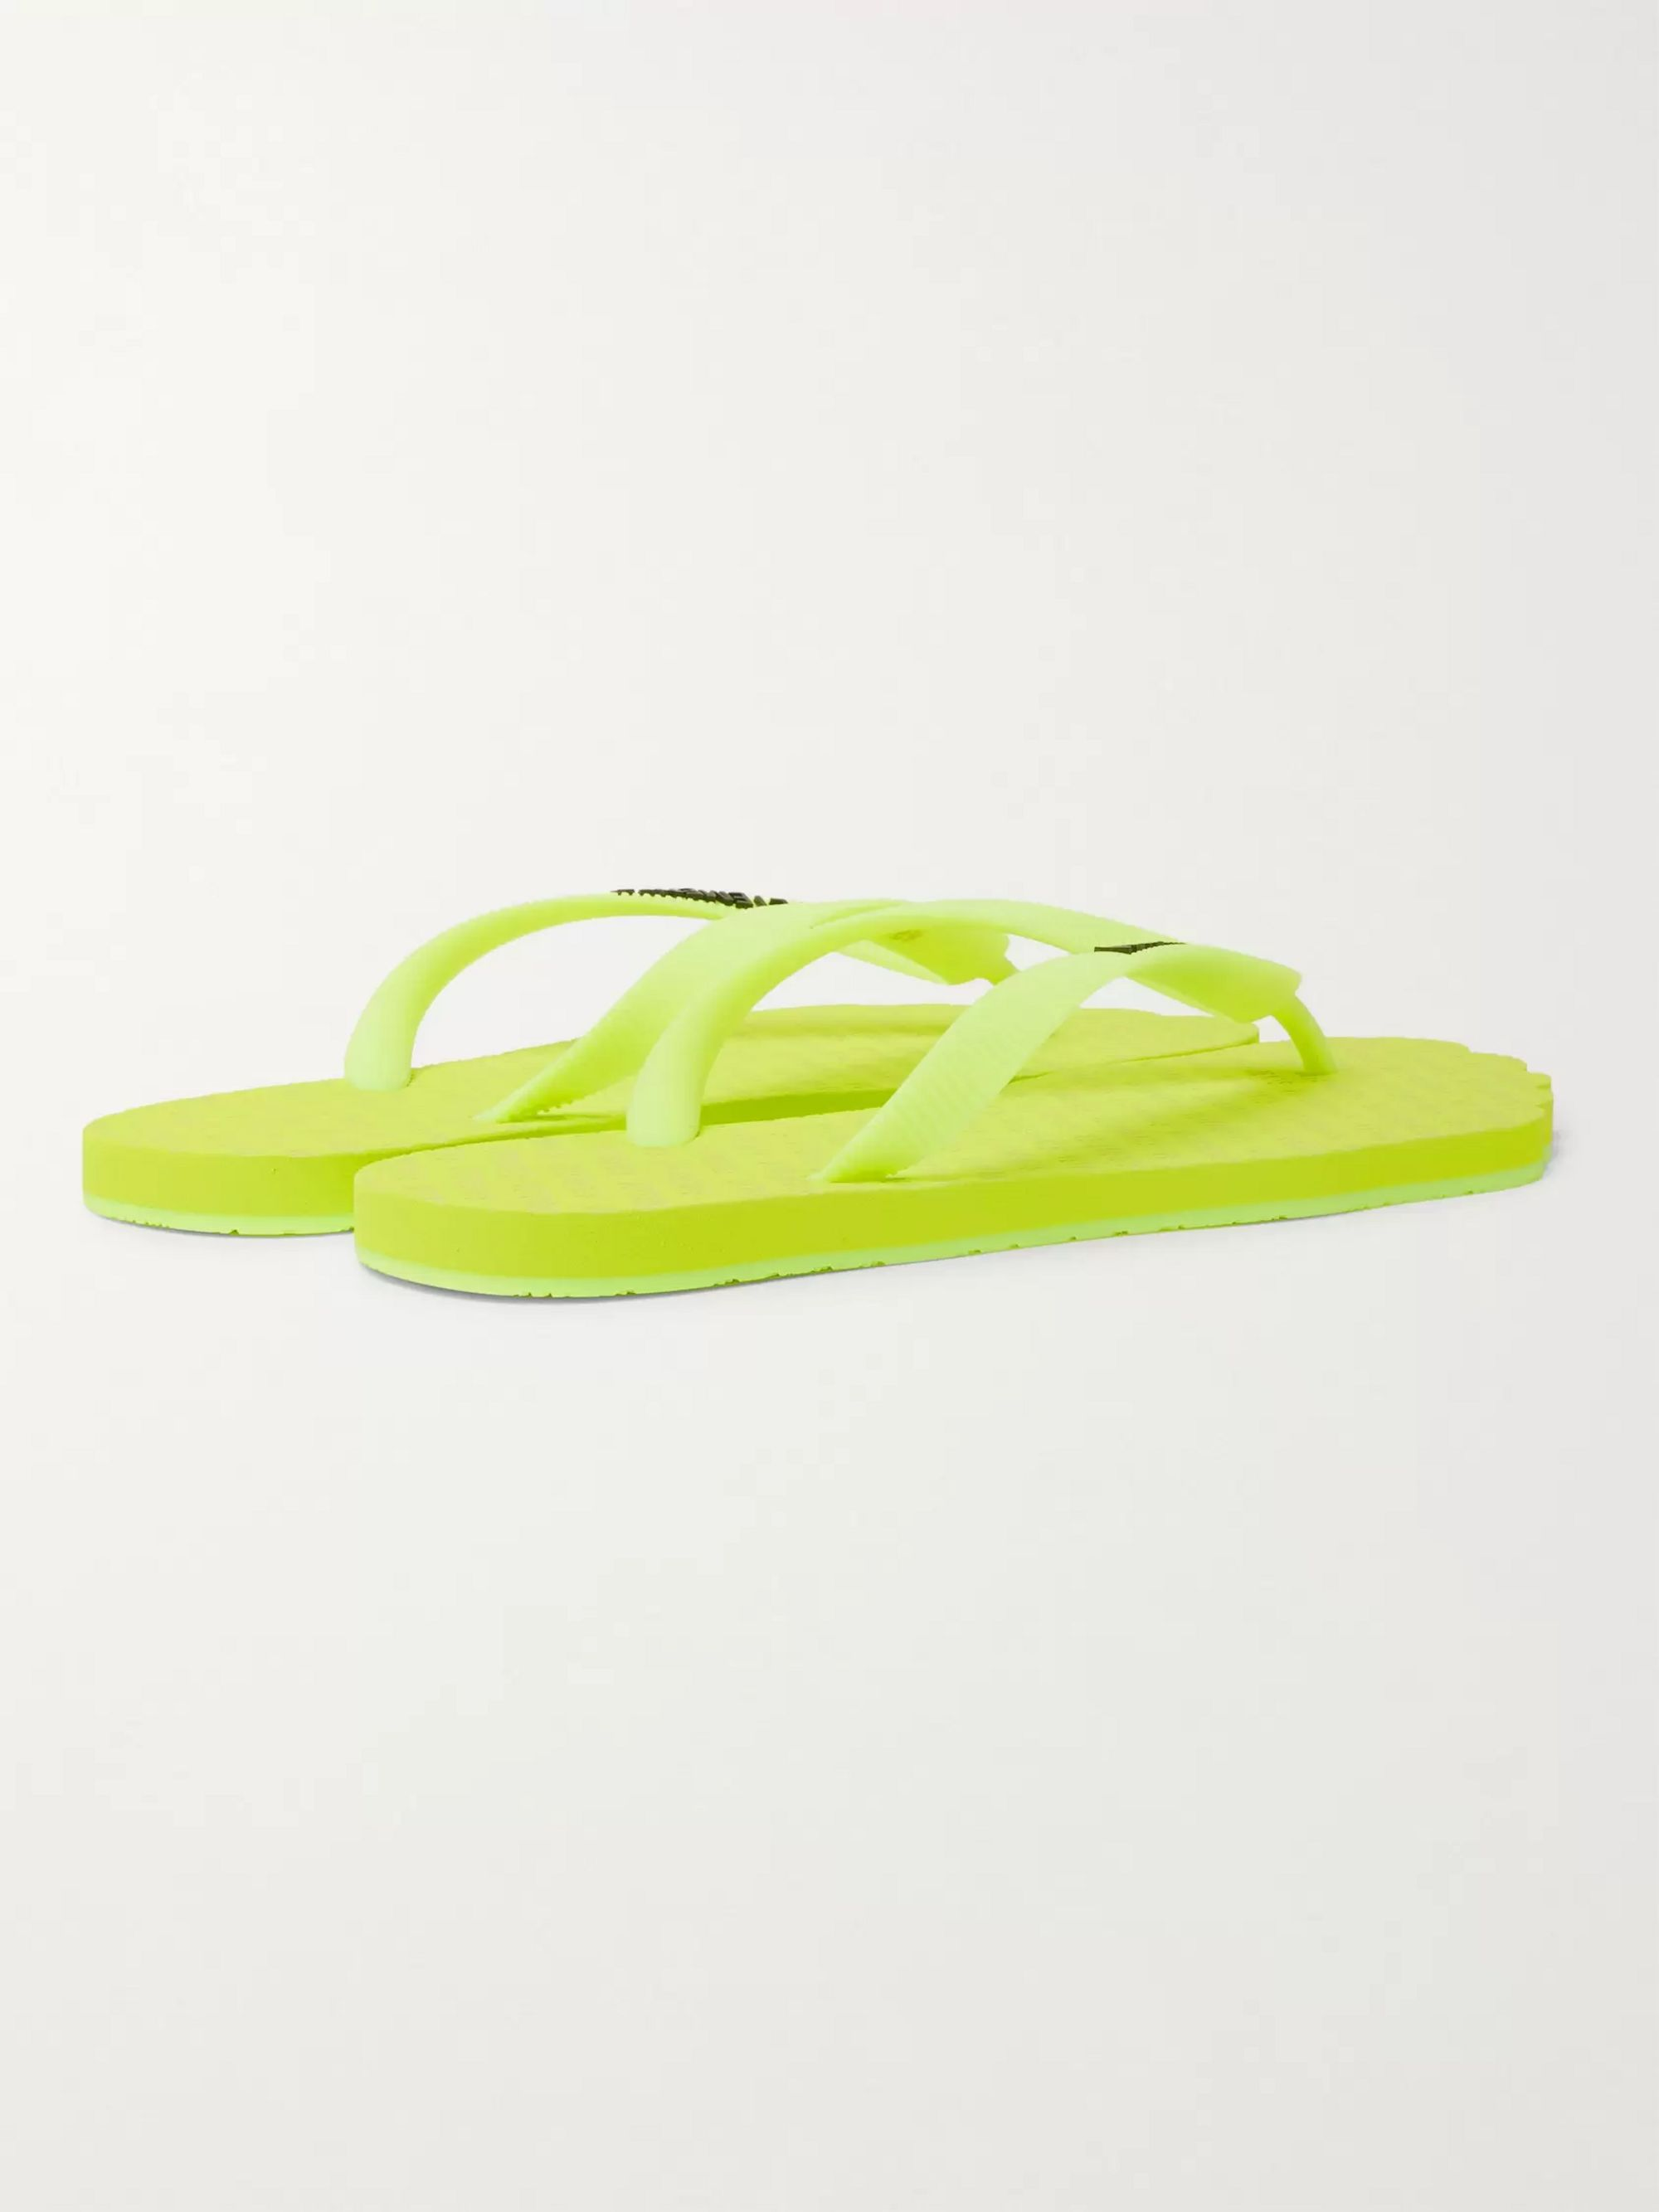 Vetements Anatomic Logo-Print Neon Rubber Flip Flops